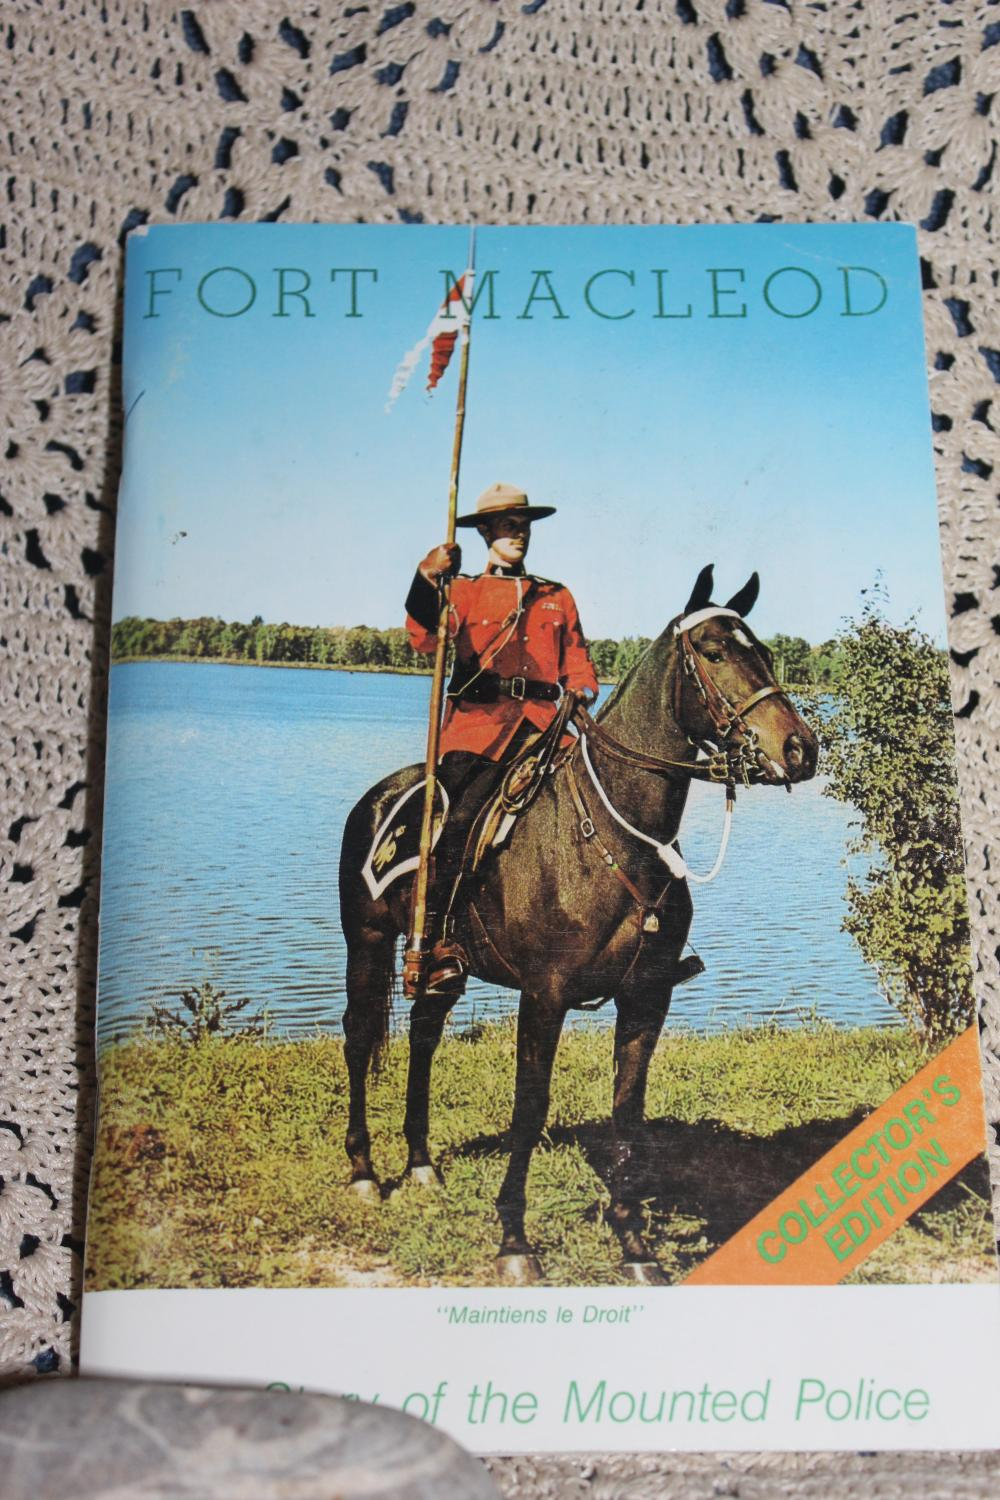 Fort MacLeod - The Story of the Mounted Police